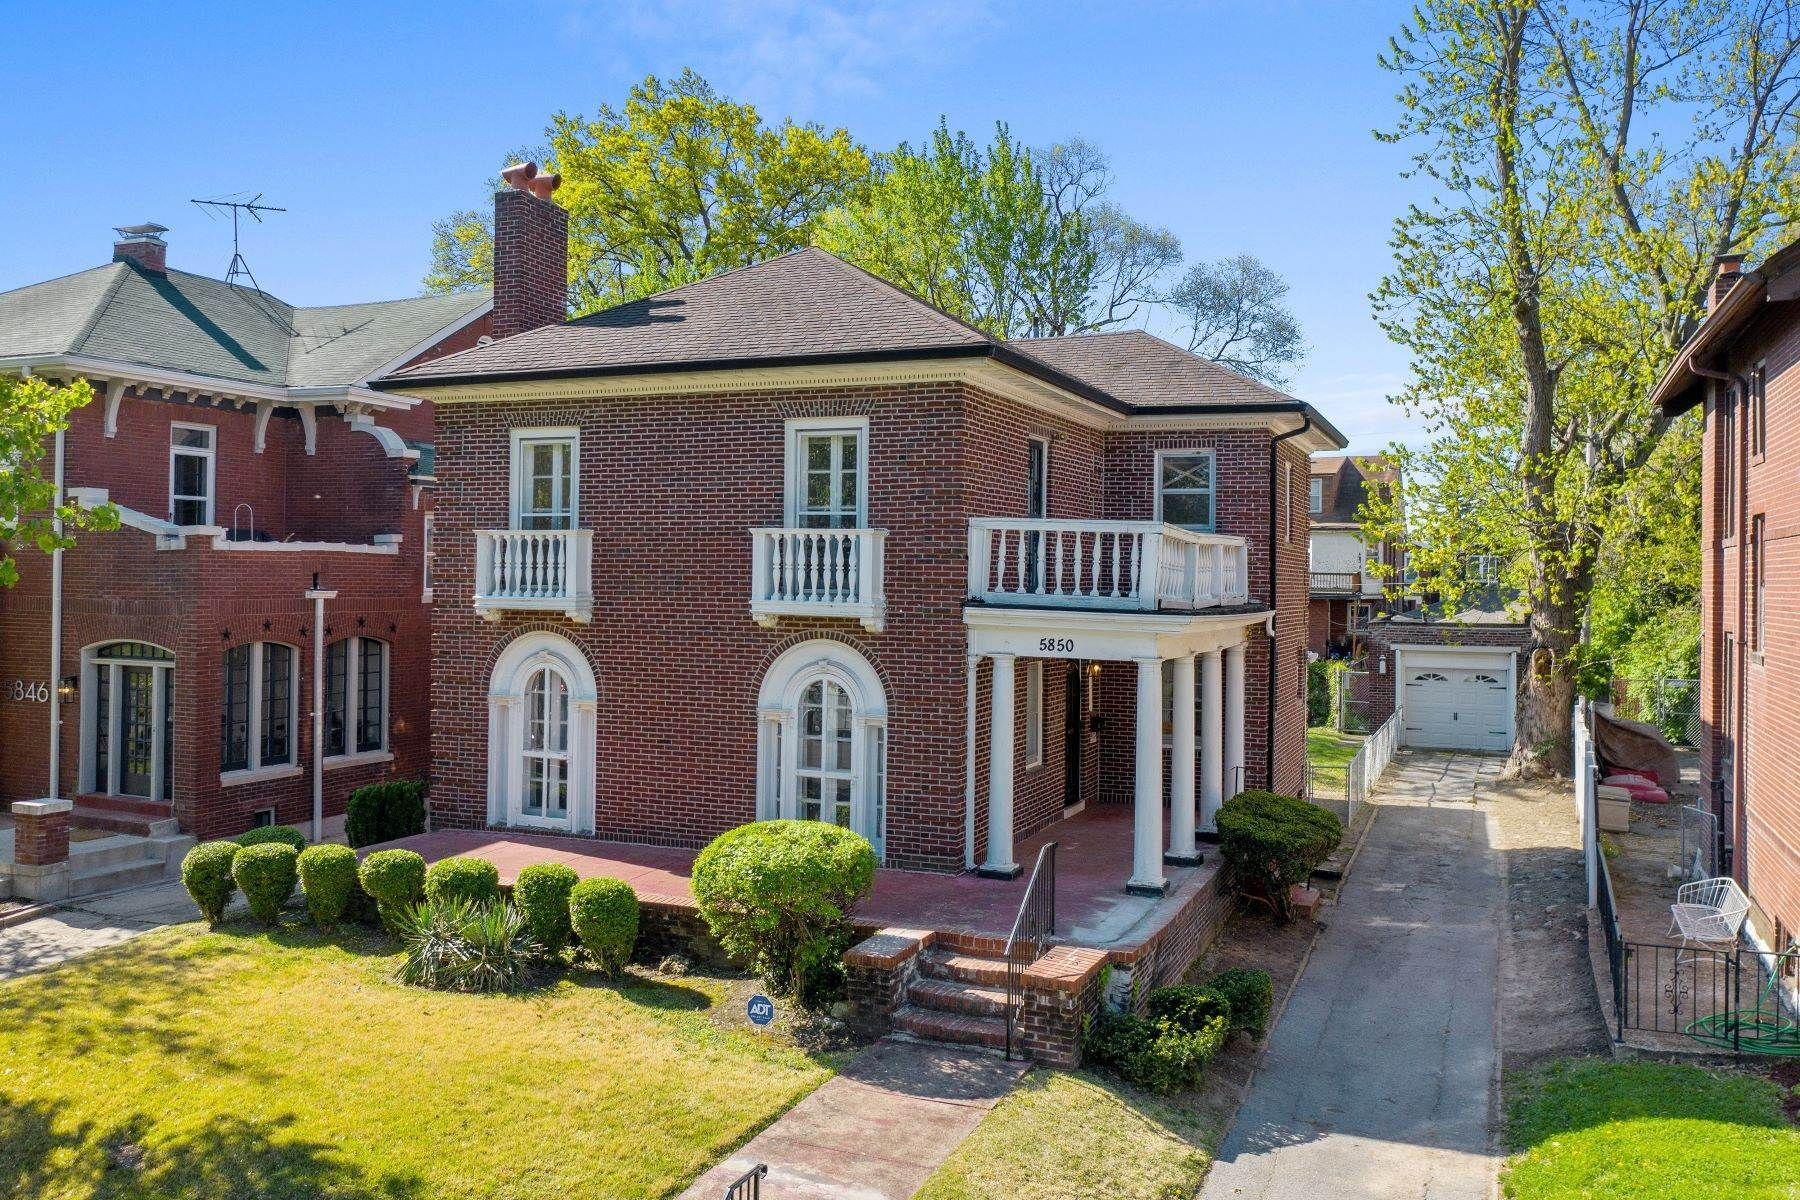 Single Family Homes for Sale at Centrally Located Historic Home 5850 Waterman Boulevard St. Louis, Missouri 63112 United States